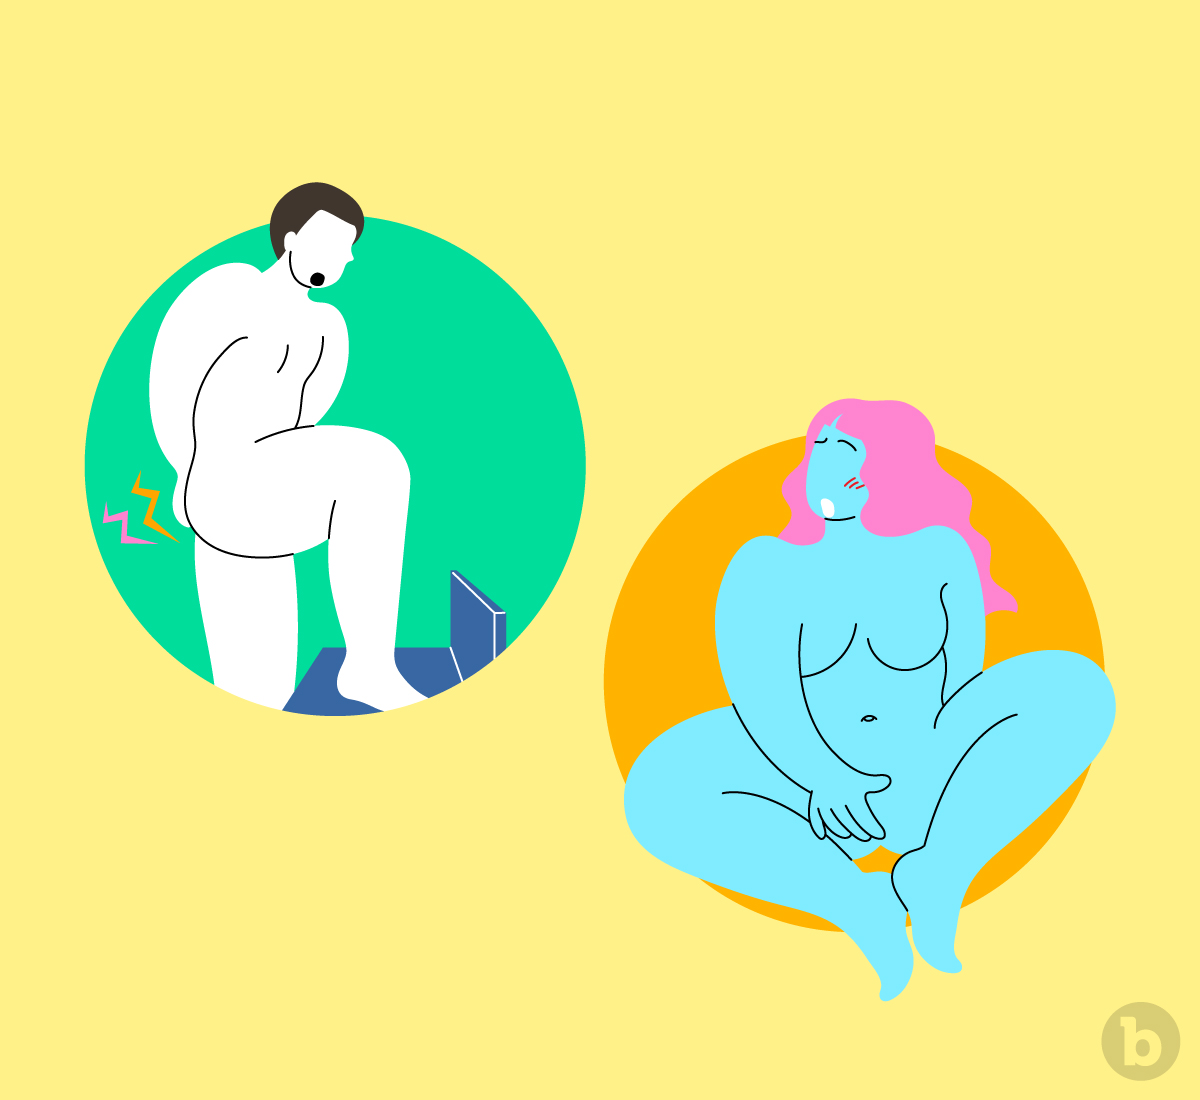 Masturbating solo is the first step to having great euphoric sex